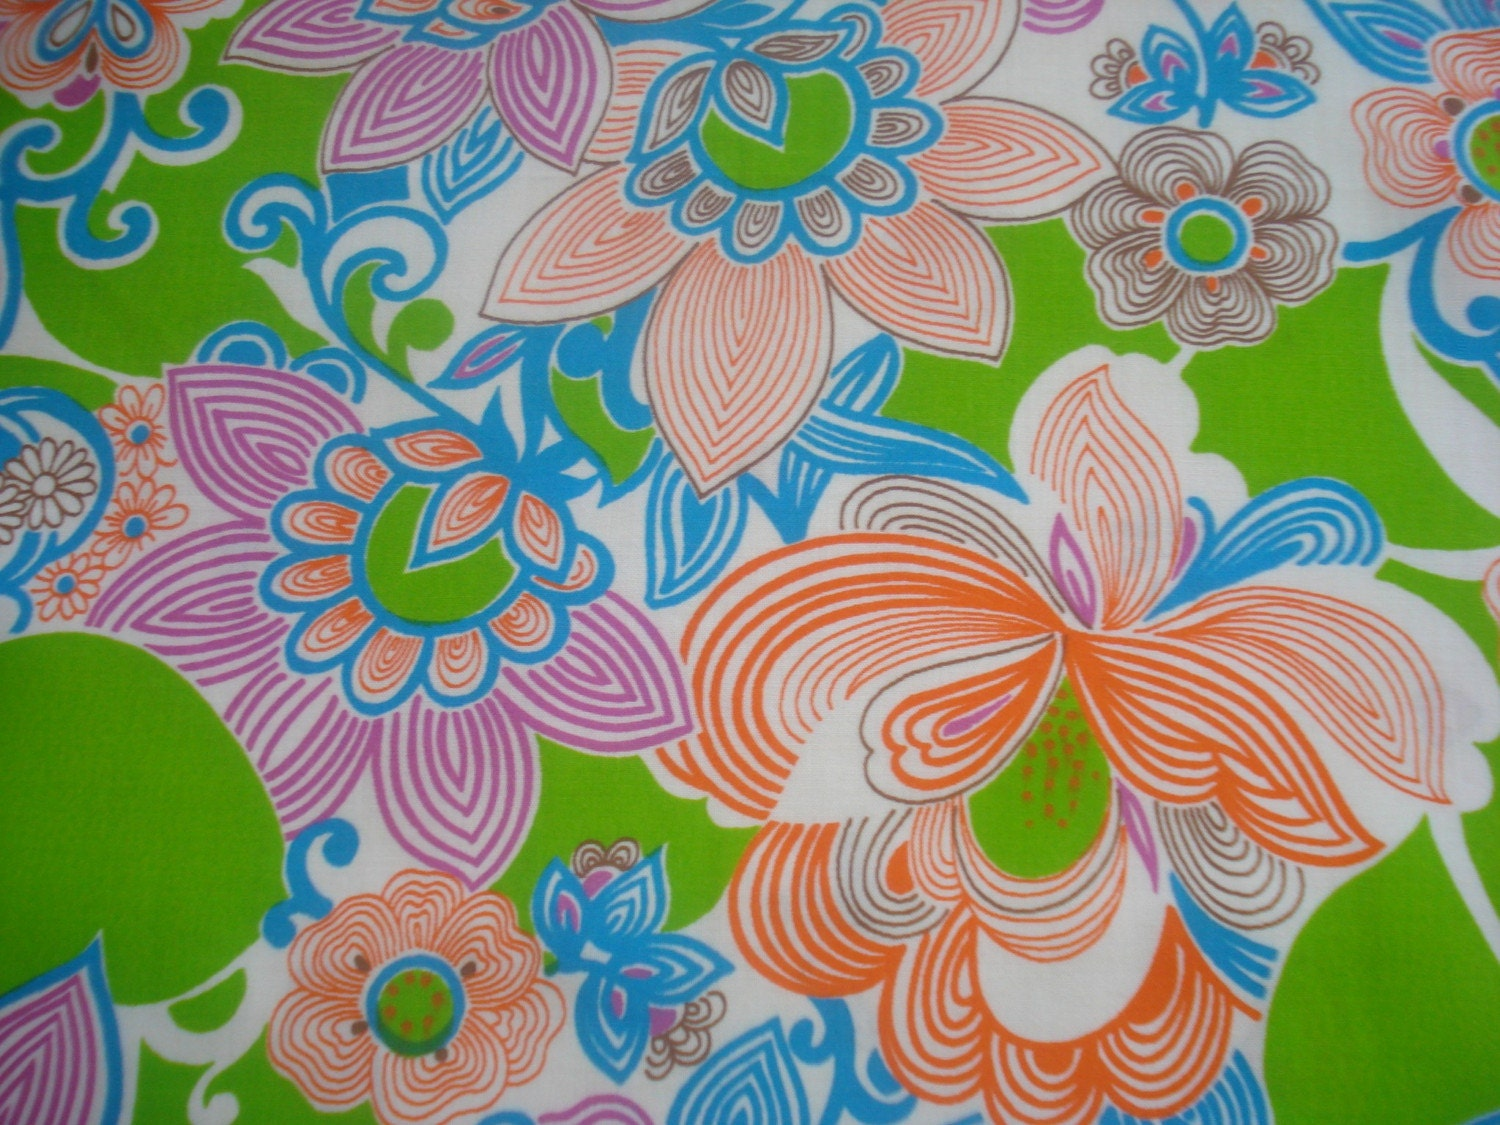 3yds Psychedelic Floral Print Cotton Fabric